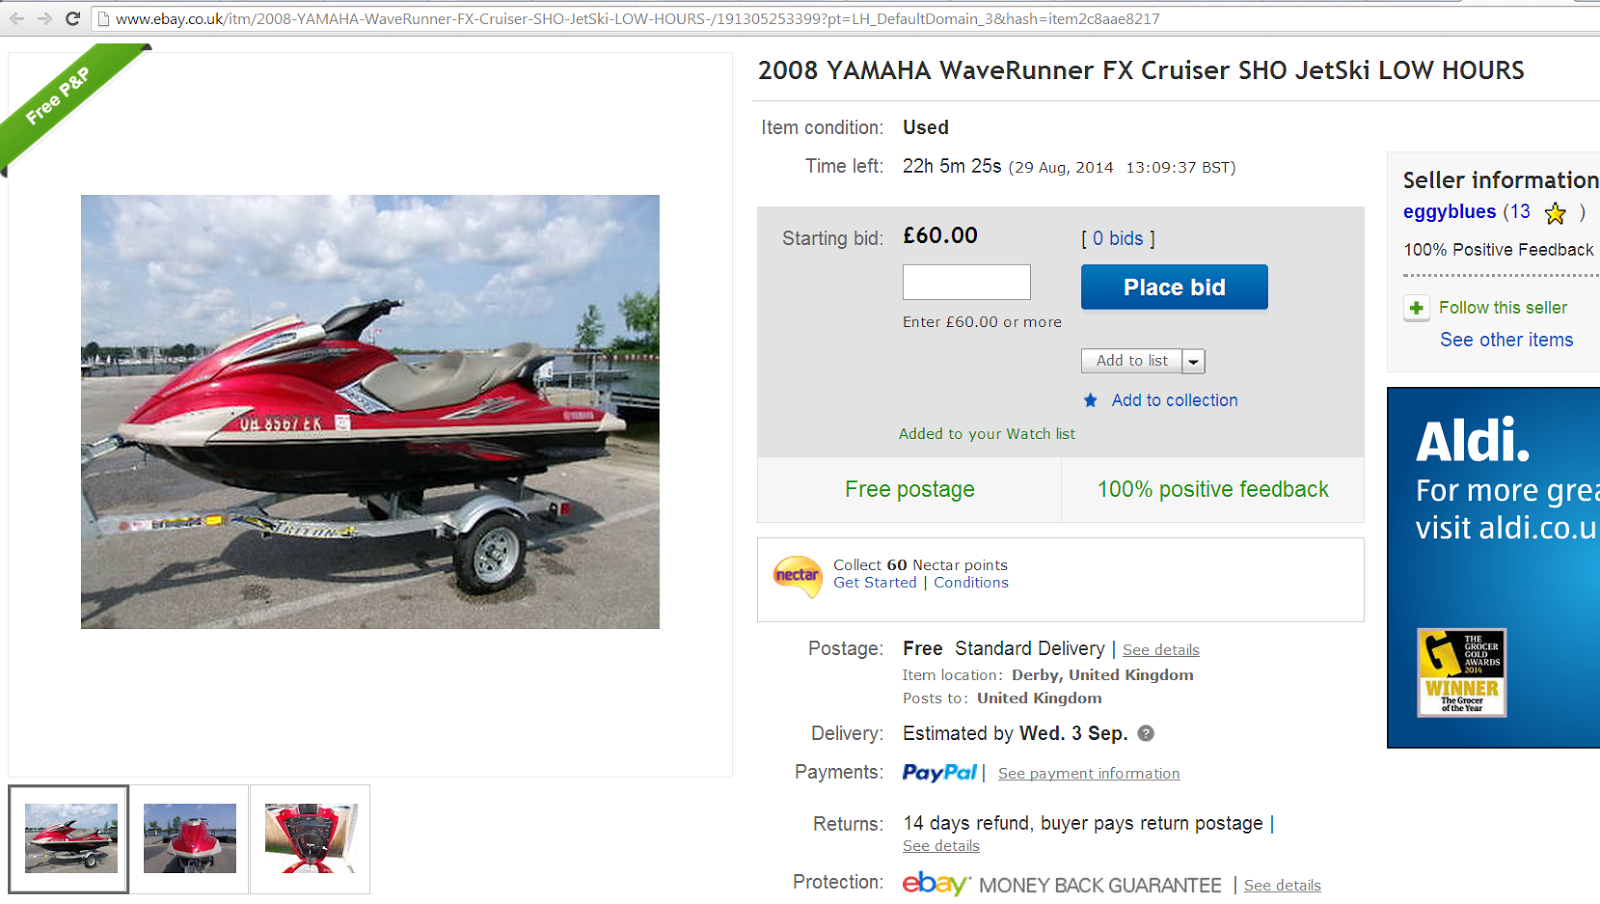 Jack Buster Jack Scam Fraud On Ebay Uk 2008 Yamaha Waverunner Fx Cruiser Sho Jetski Low Hours 28 Aug 14 Johnreadm Gmail Com